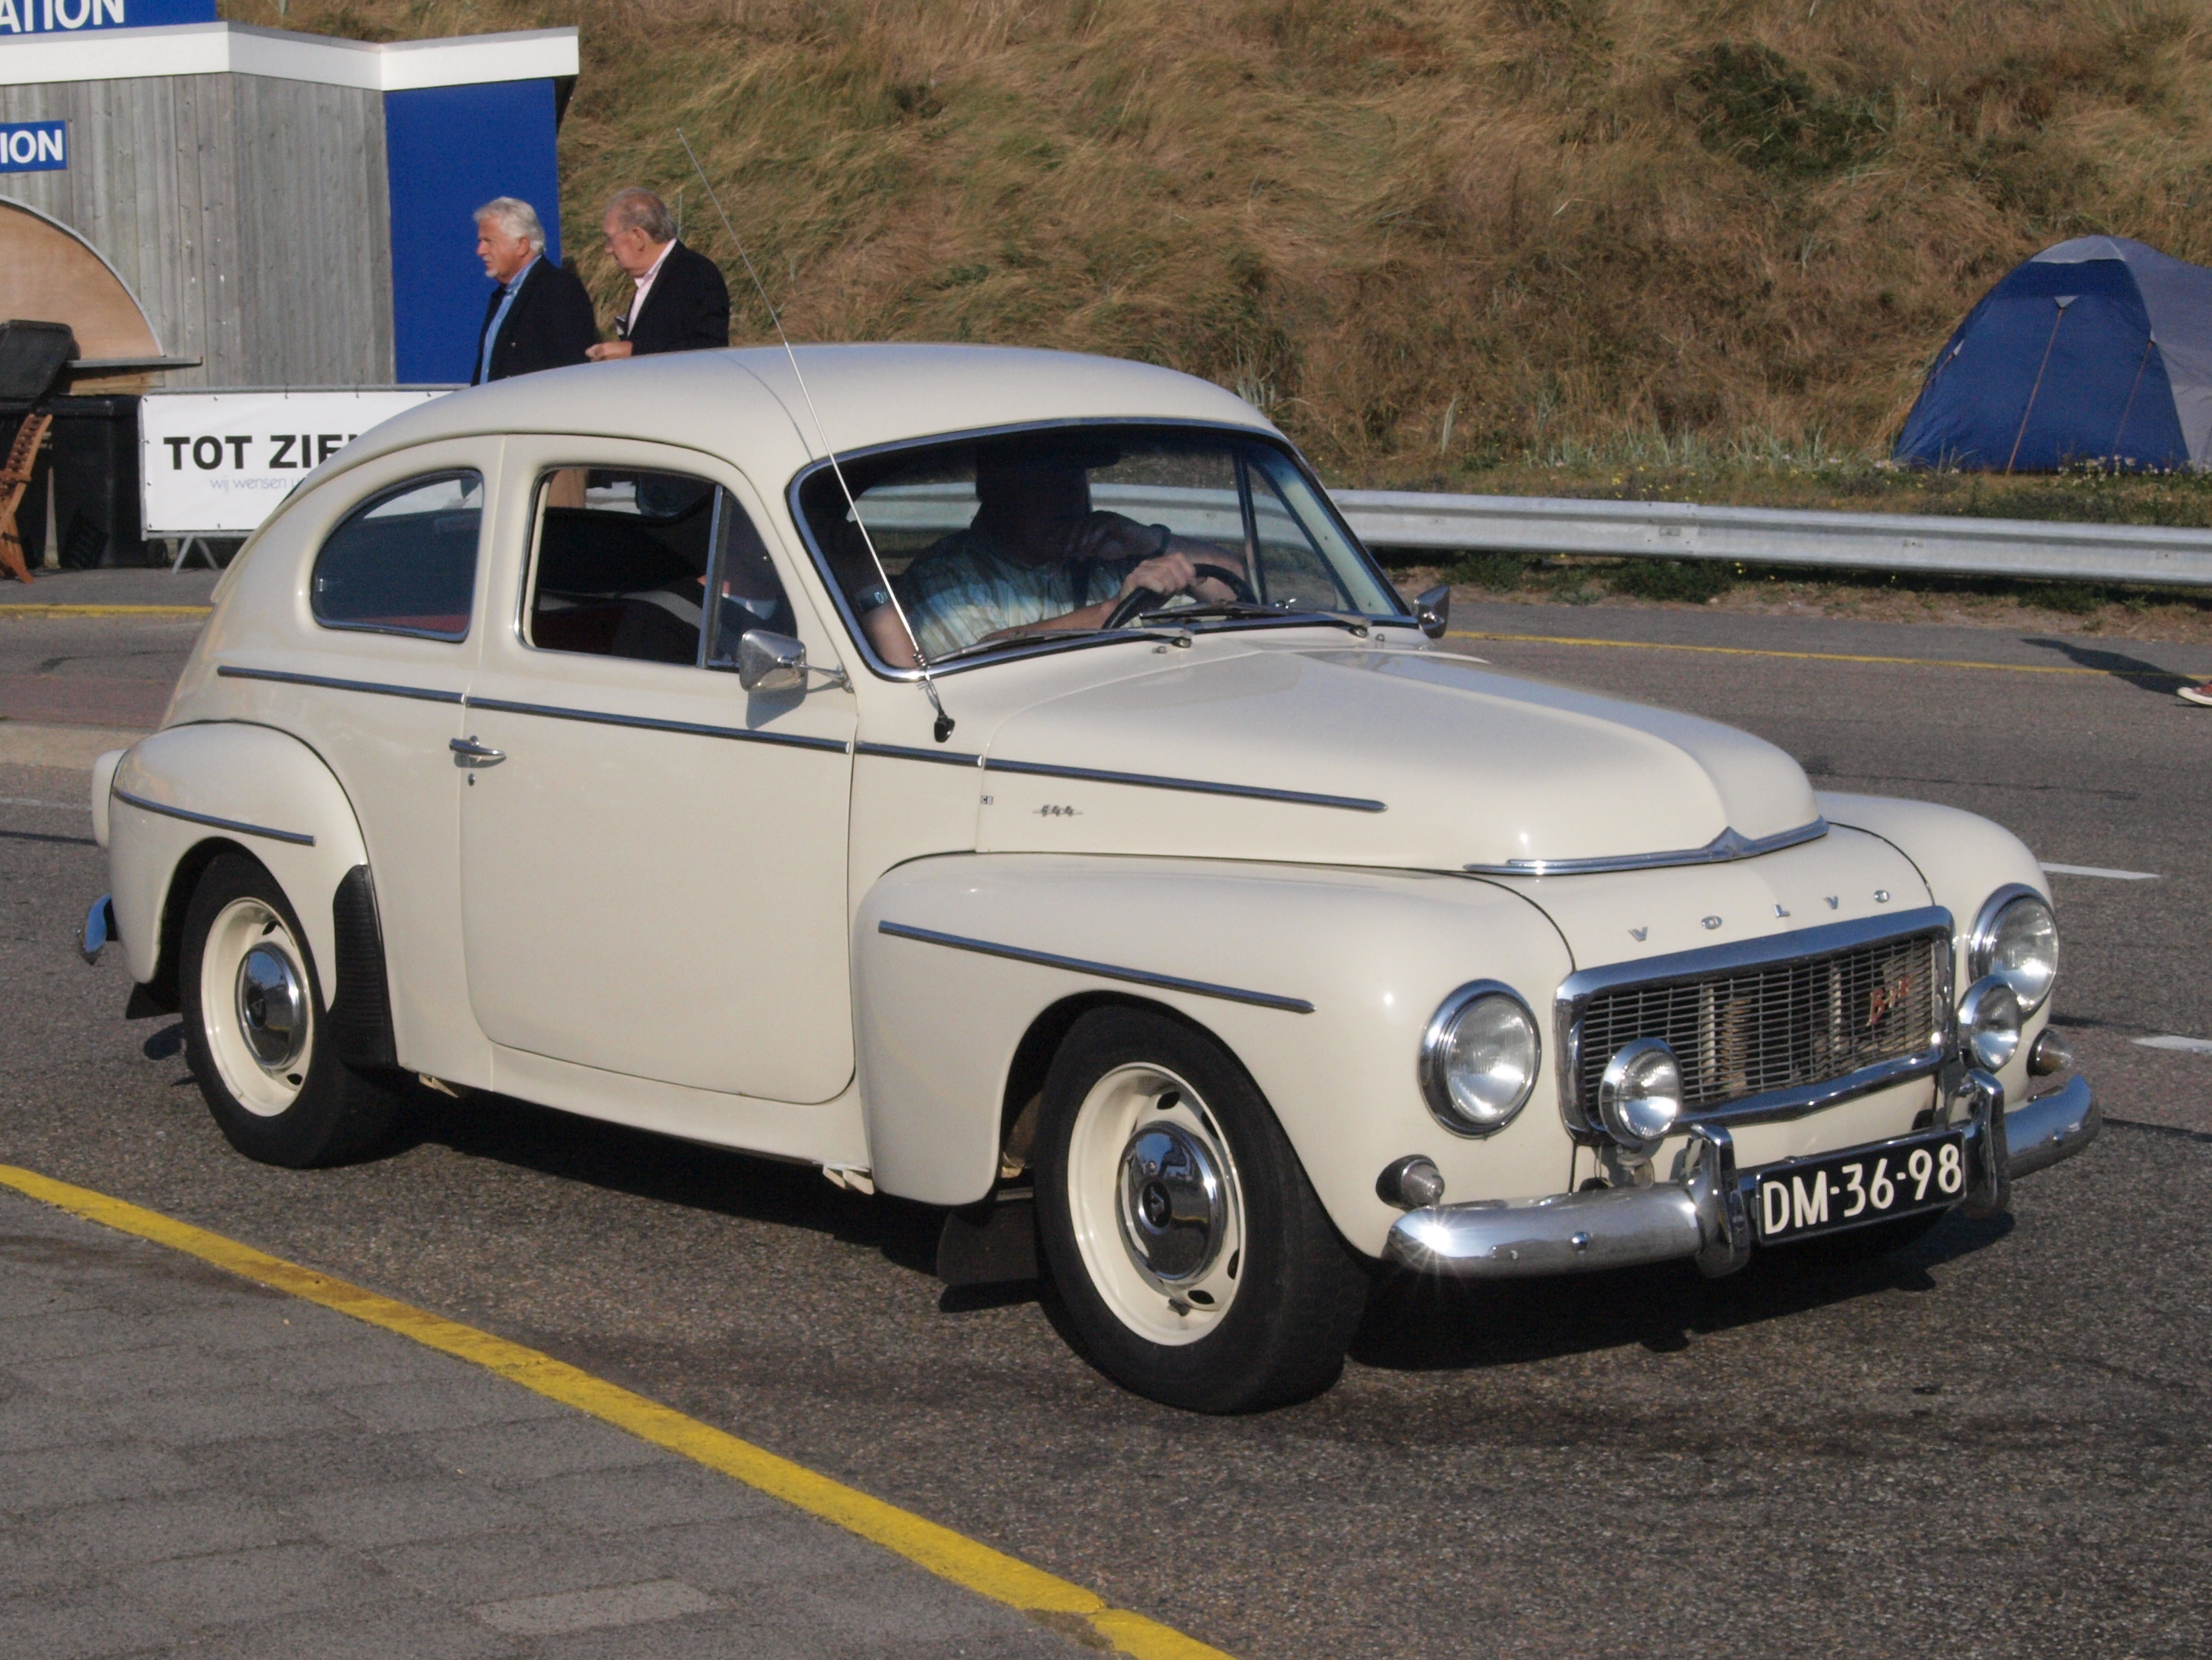 File Volvo Pv 544 Dutch Licence Registration Dm 36 98 Pic4 Jpg